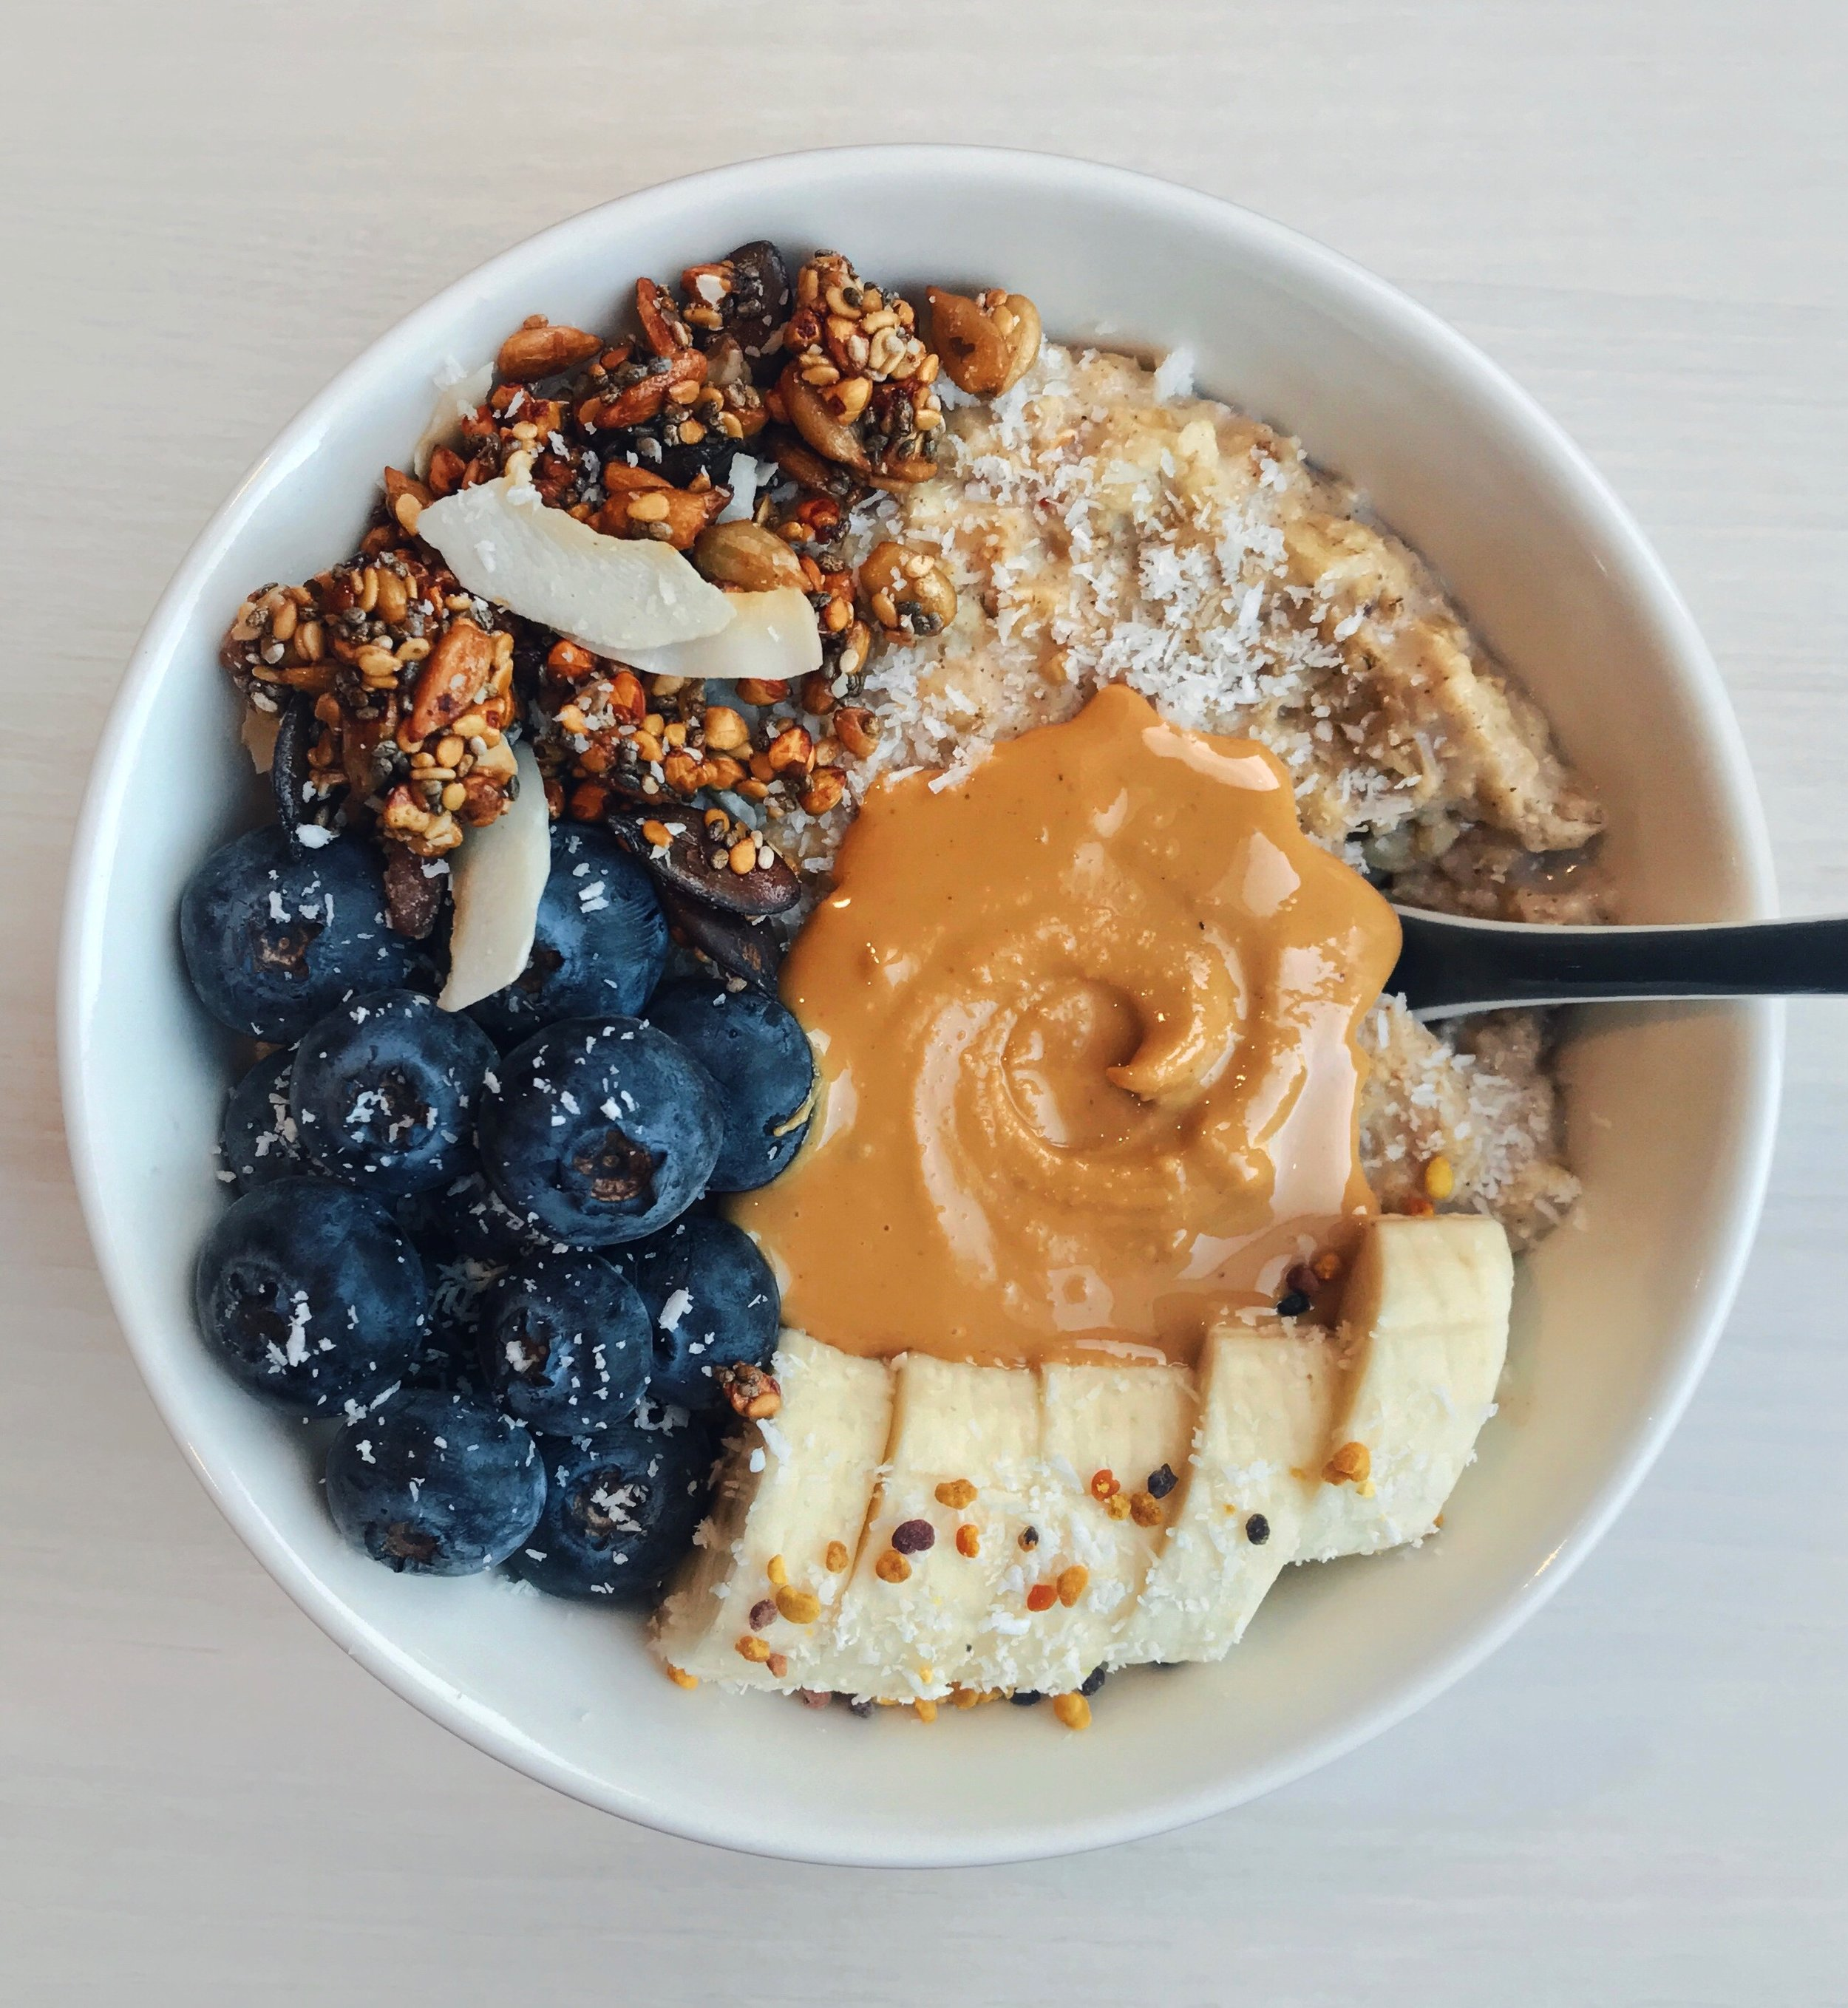 Creamy Coconut& Vanilla Oats - 1/2 cup oats cooked with 1 cup soy milk + 1 tsp coconut powder + 1 tbsp vanilla powder for about 5min on low heat in a pan.Topped with @driscollsberryblueberries +@lameremimosacoconut granola + banana slices +@wild_friendspeanut butter + extra coconut powder +@koro_frbee pollen